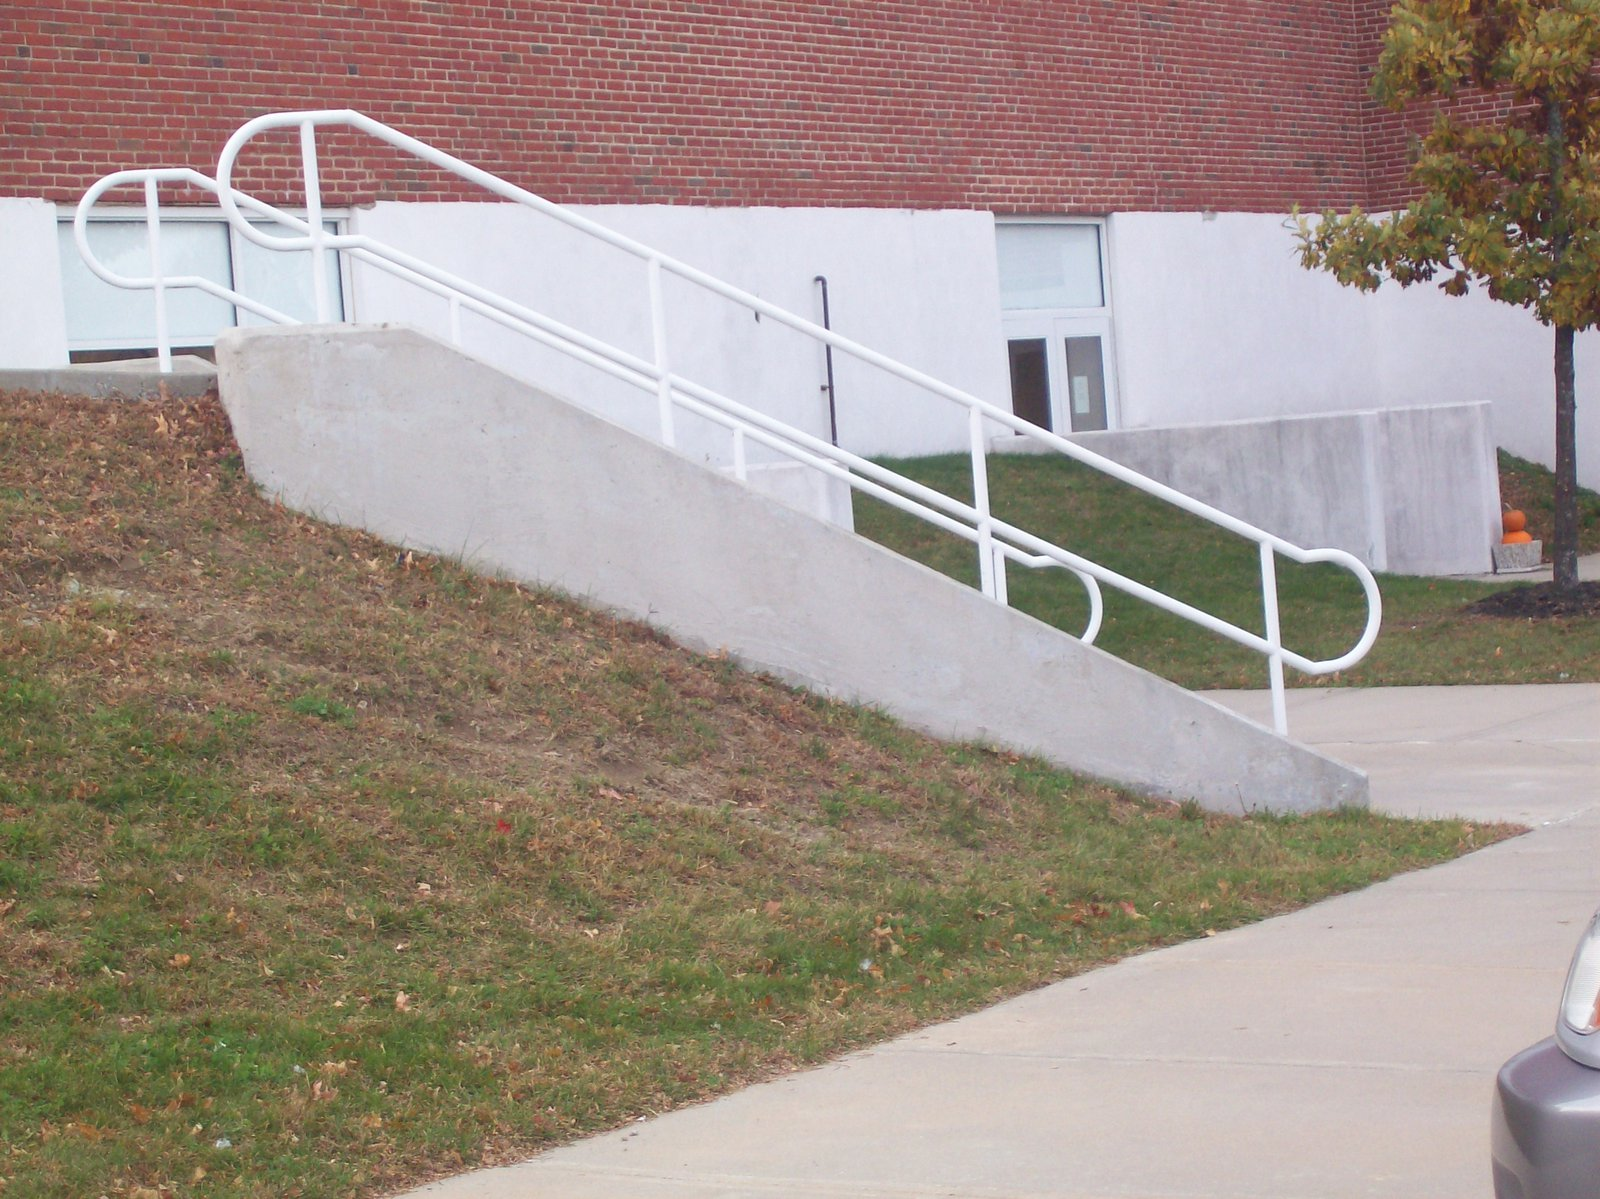 CHS down rail